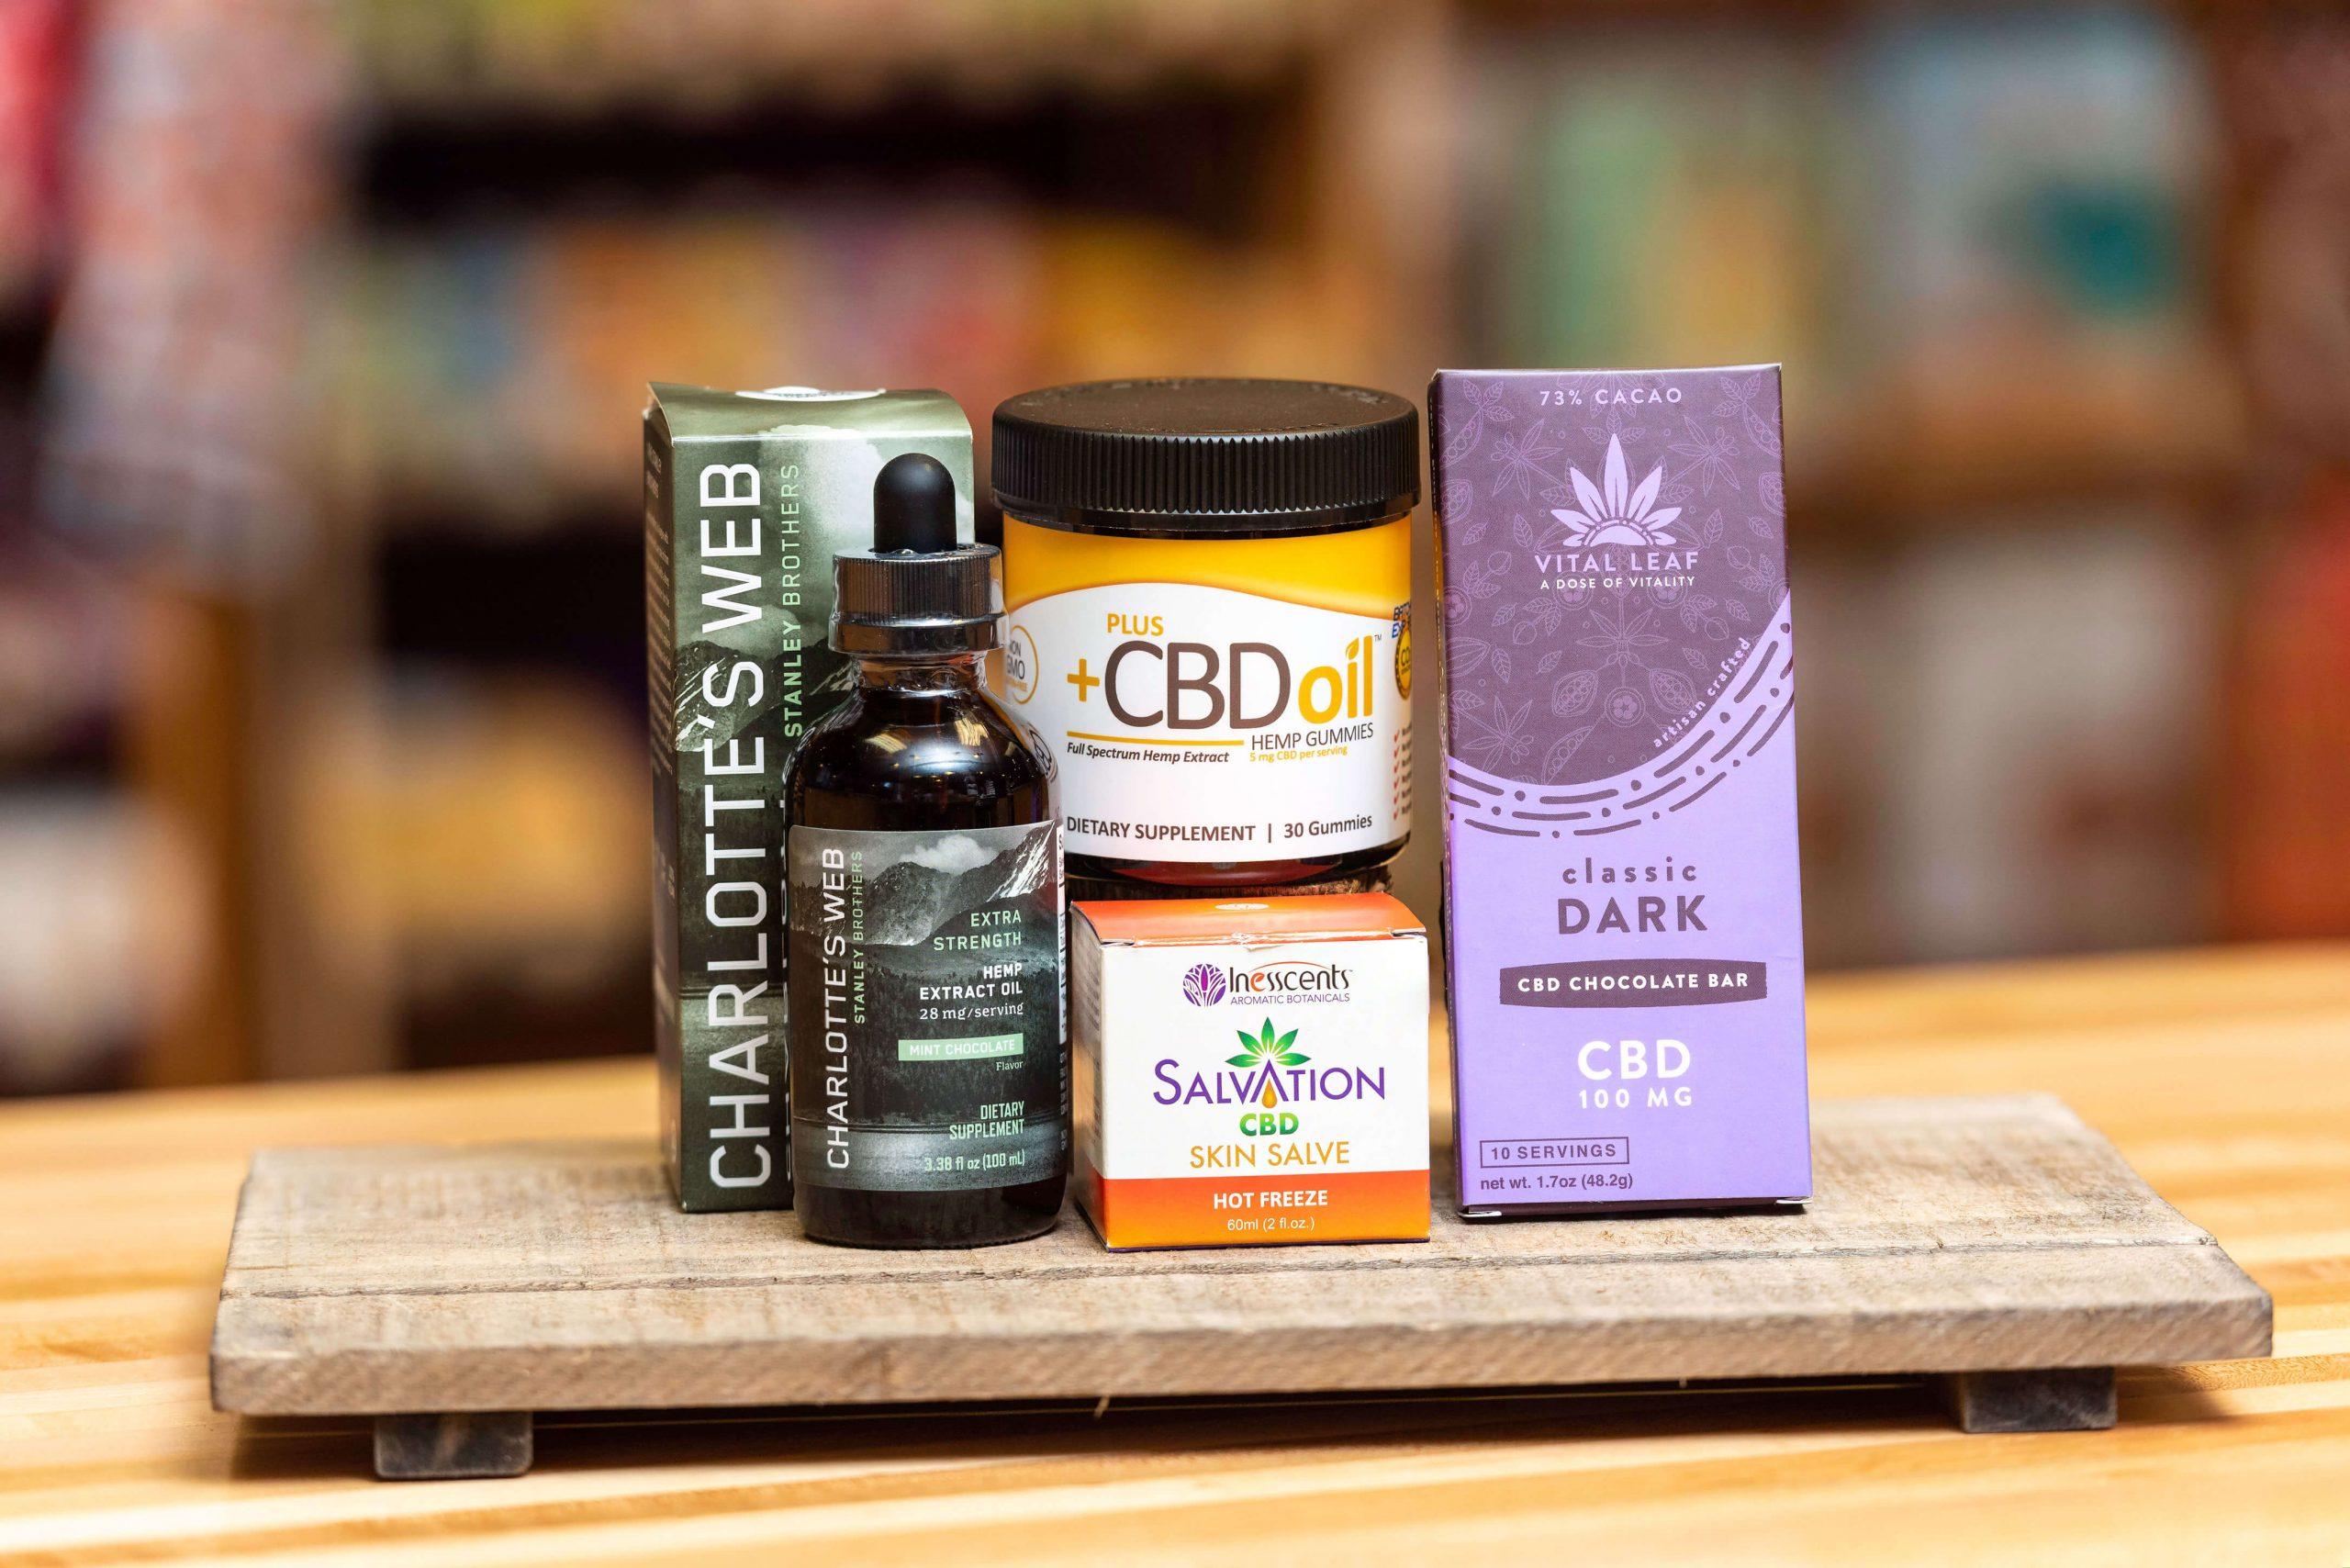 The Top 7 CBD Brands Reviewed